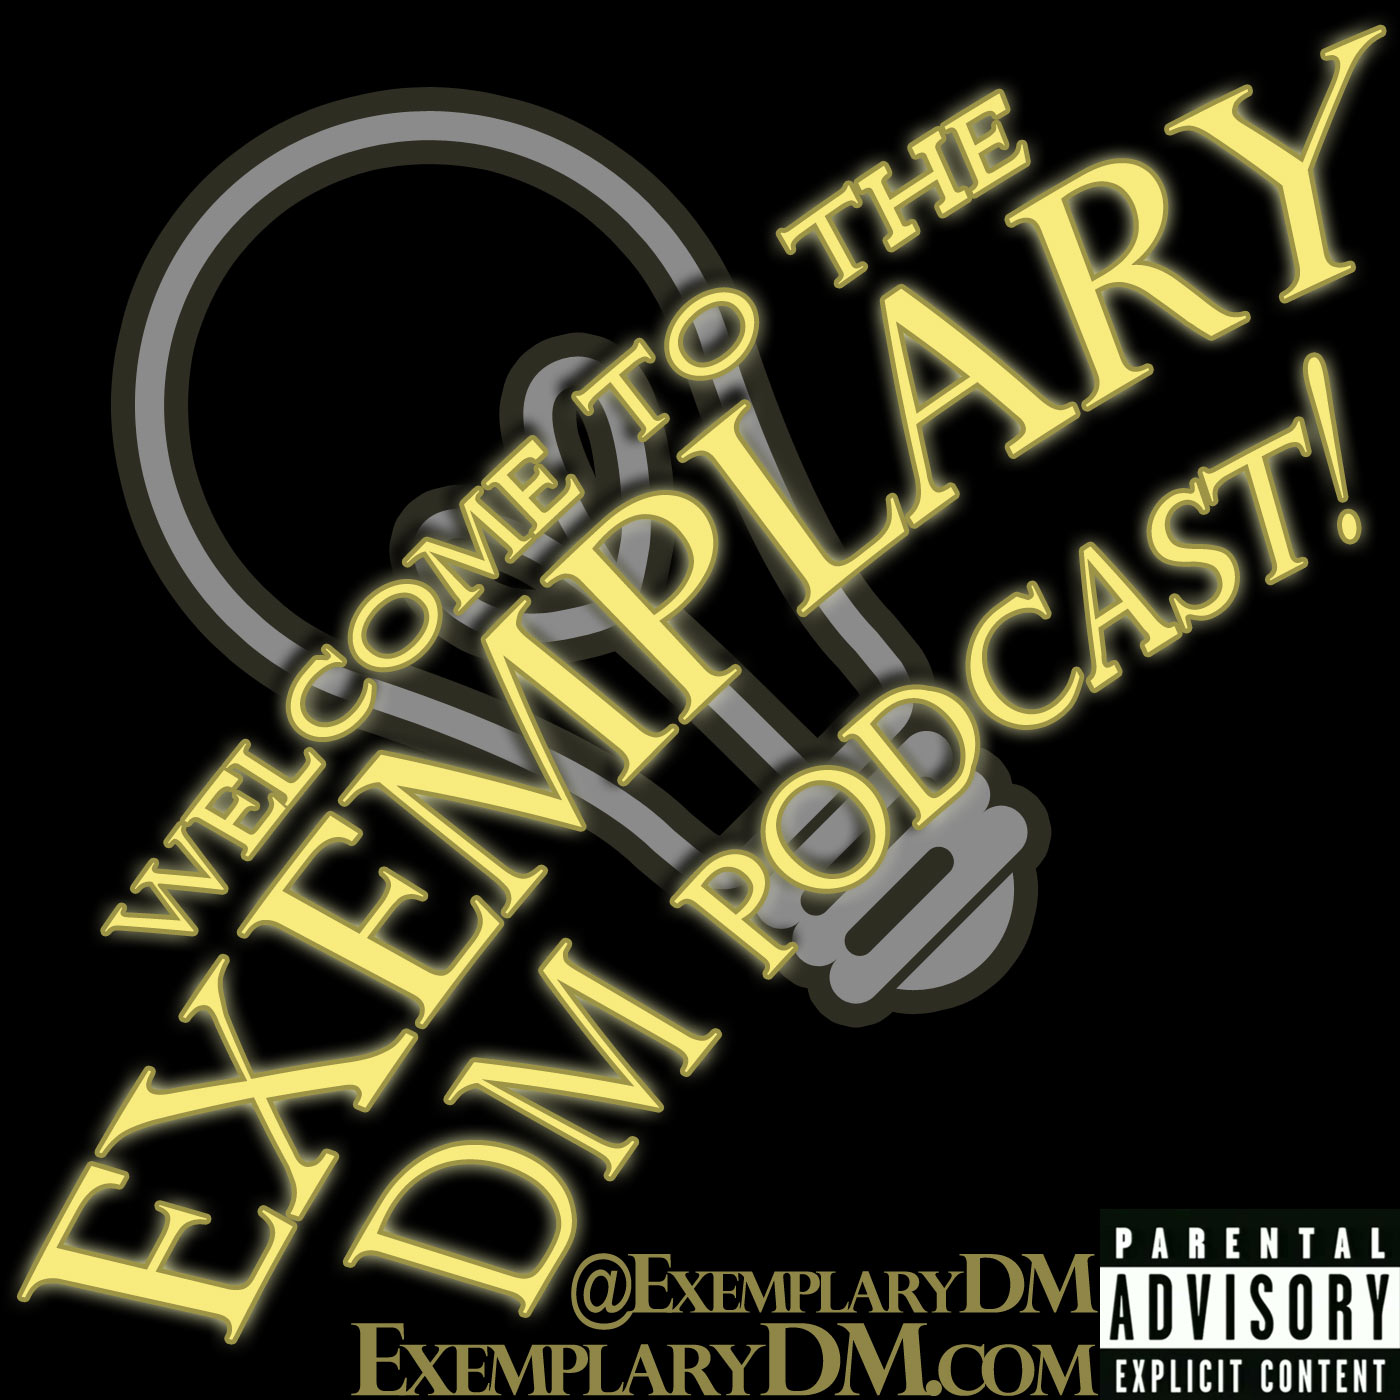 THE EXEMPLARY DM PODCAST logo